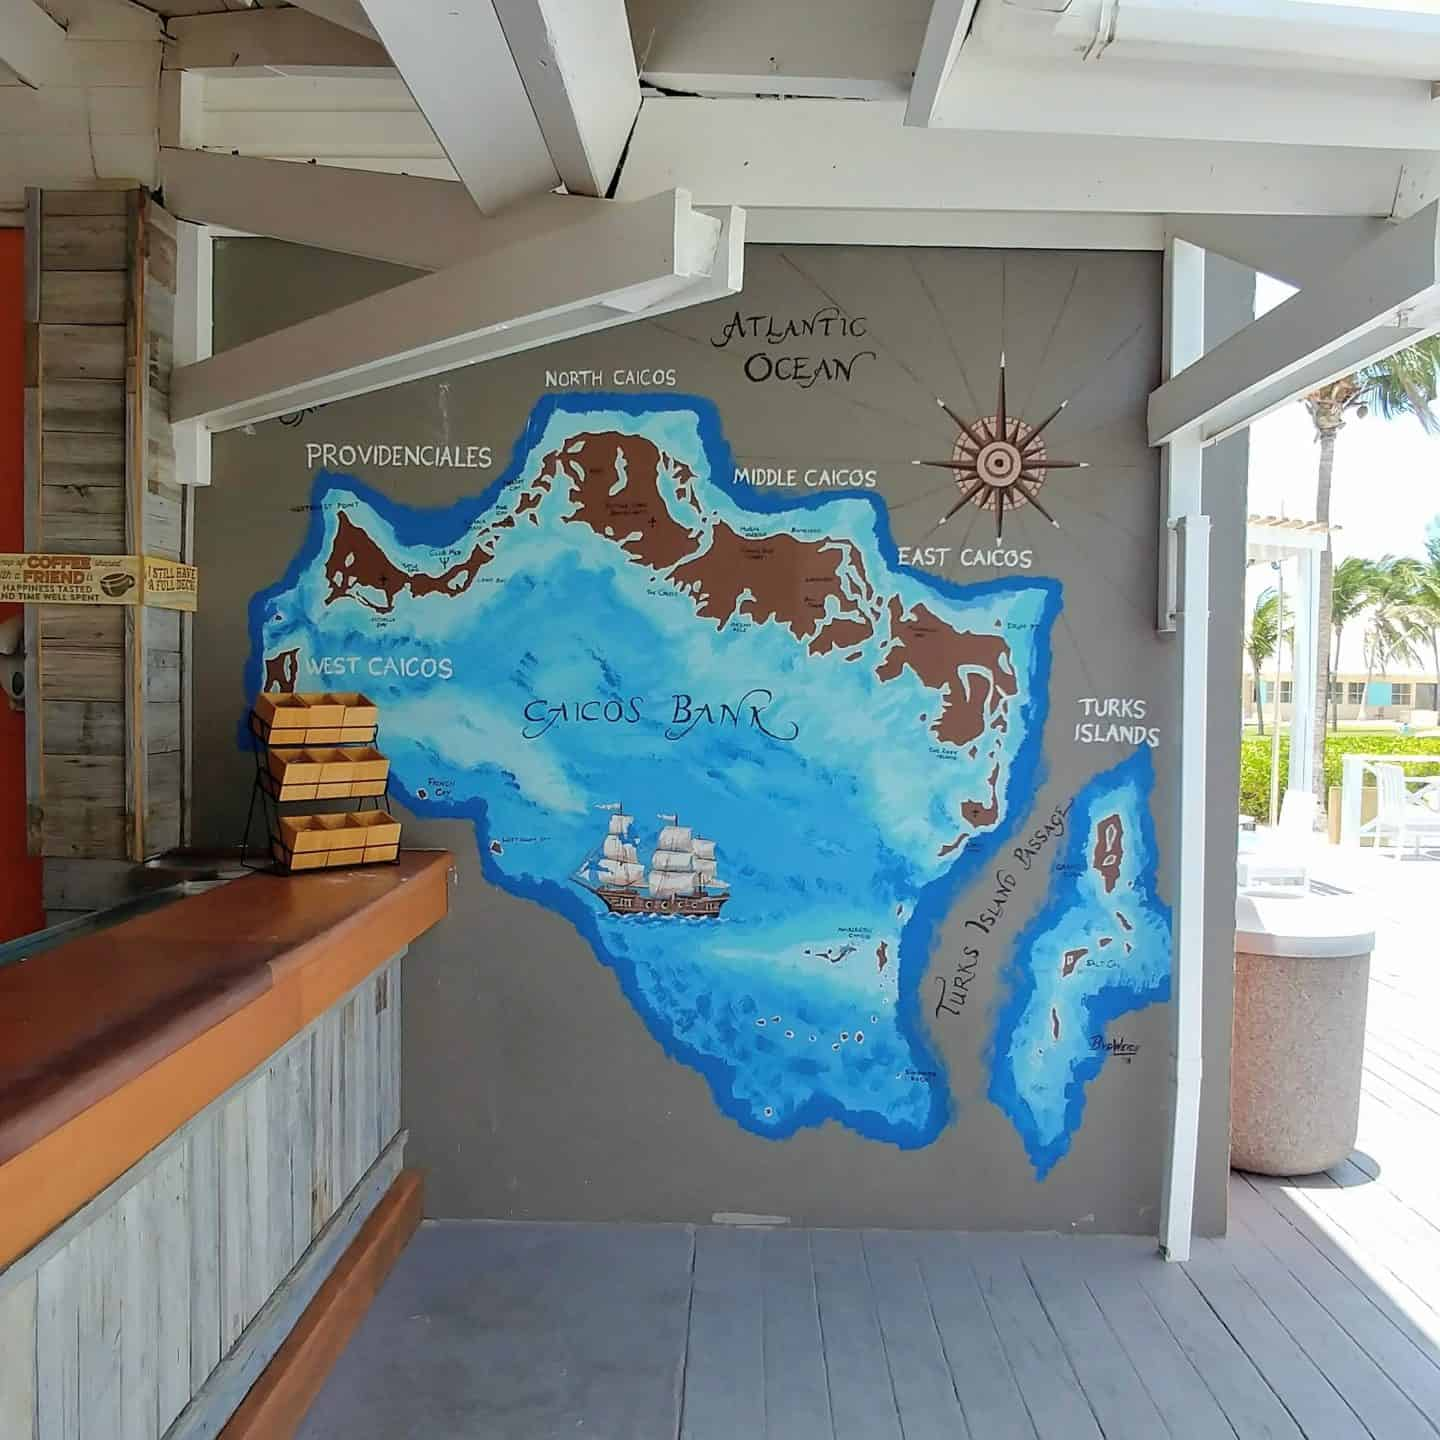 Club Med Turks and Caicos Resort sign of blue Turks and Caicos island map